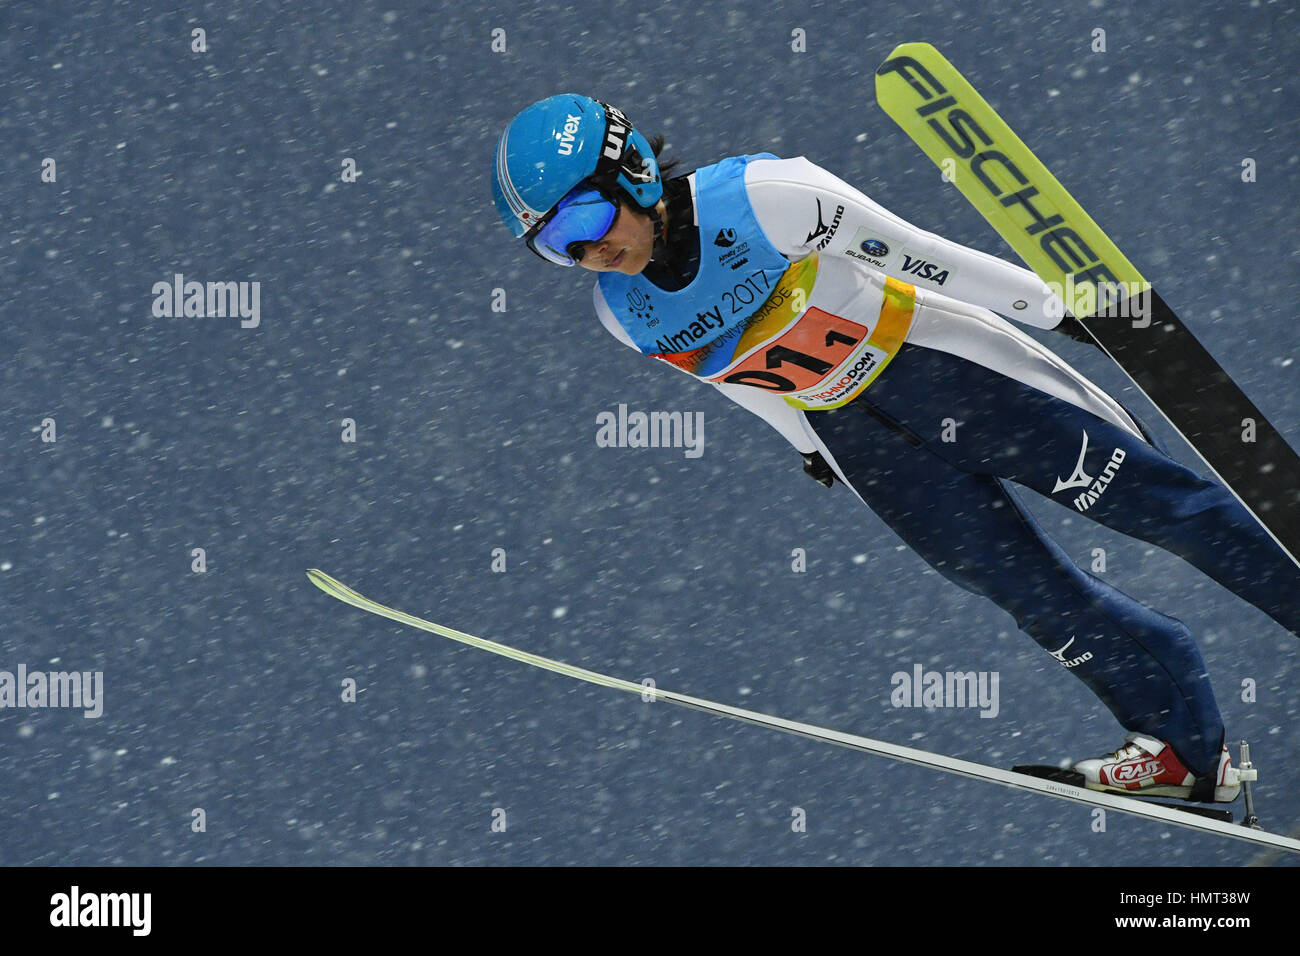 Sunkar Saut à ski international complexe, Almaty, Kazakhstan. Feb, 2017 4. Jun Maruyama (JPN), 4 février Photo Stock